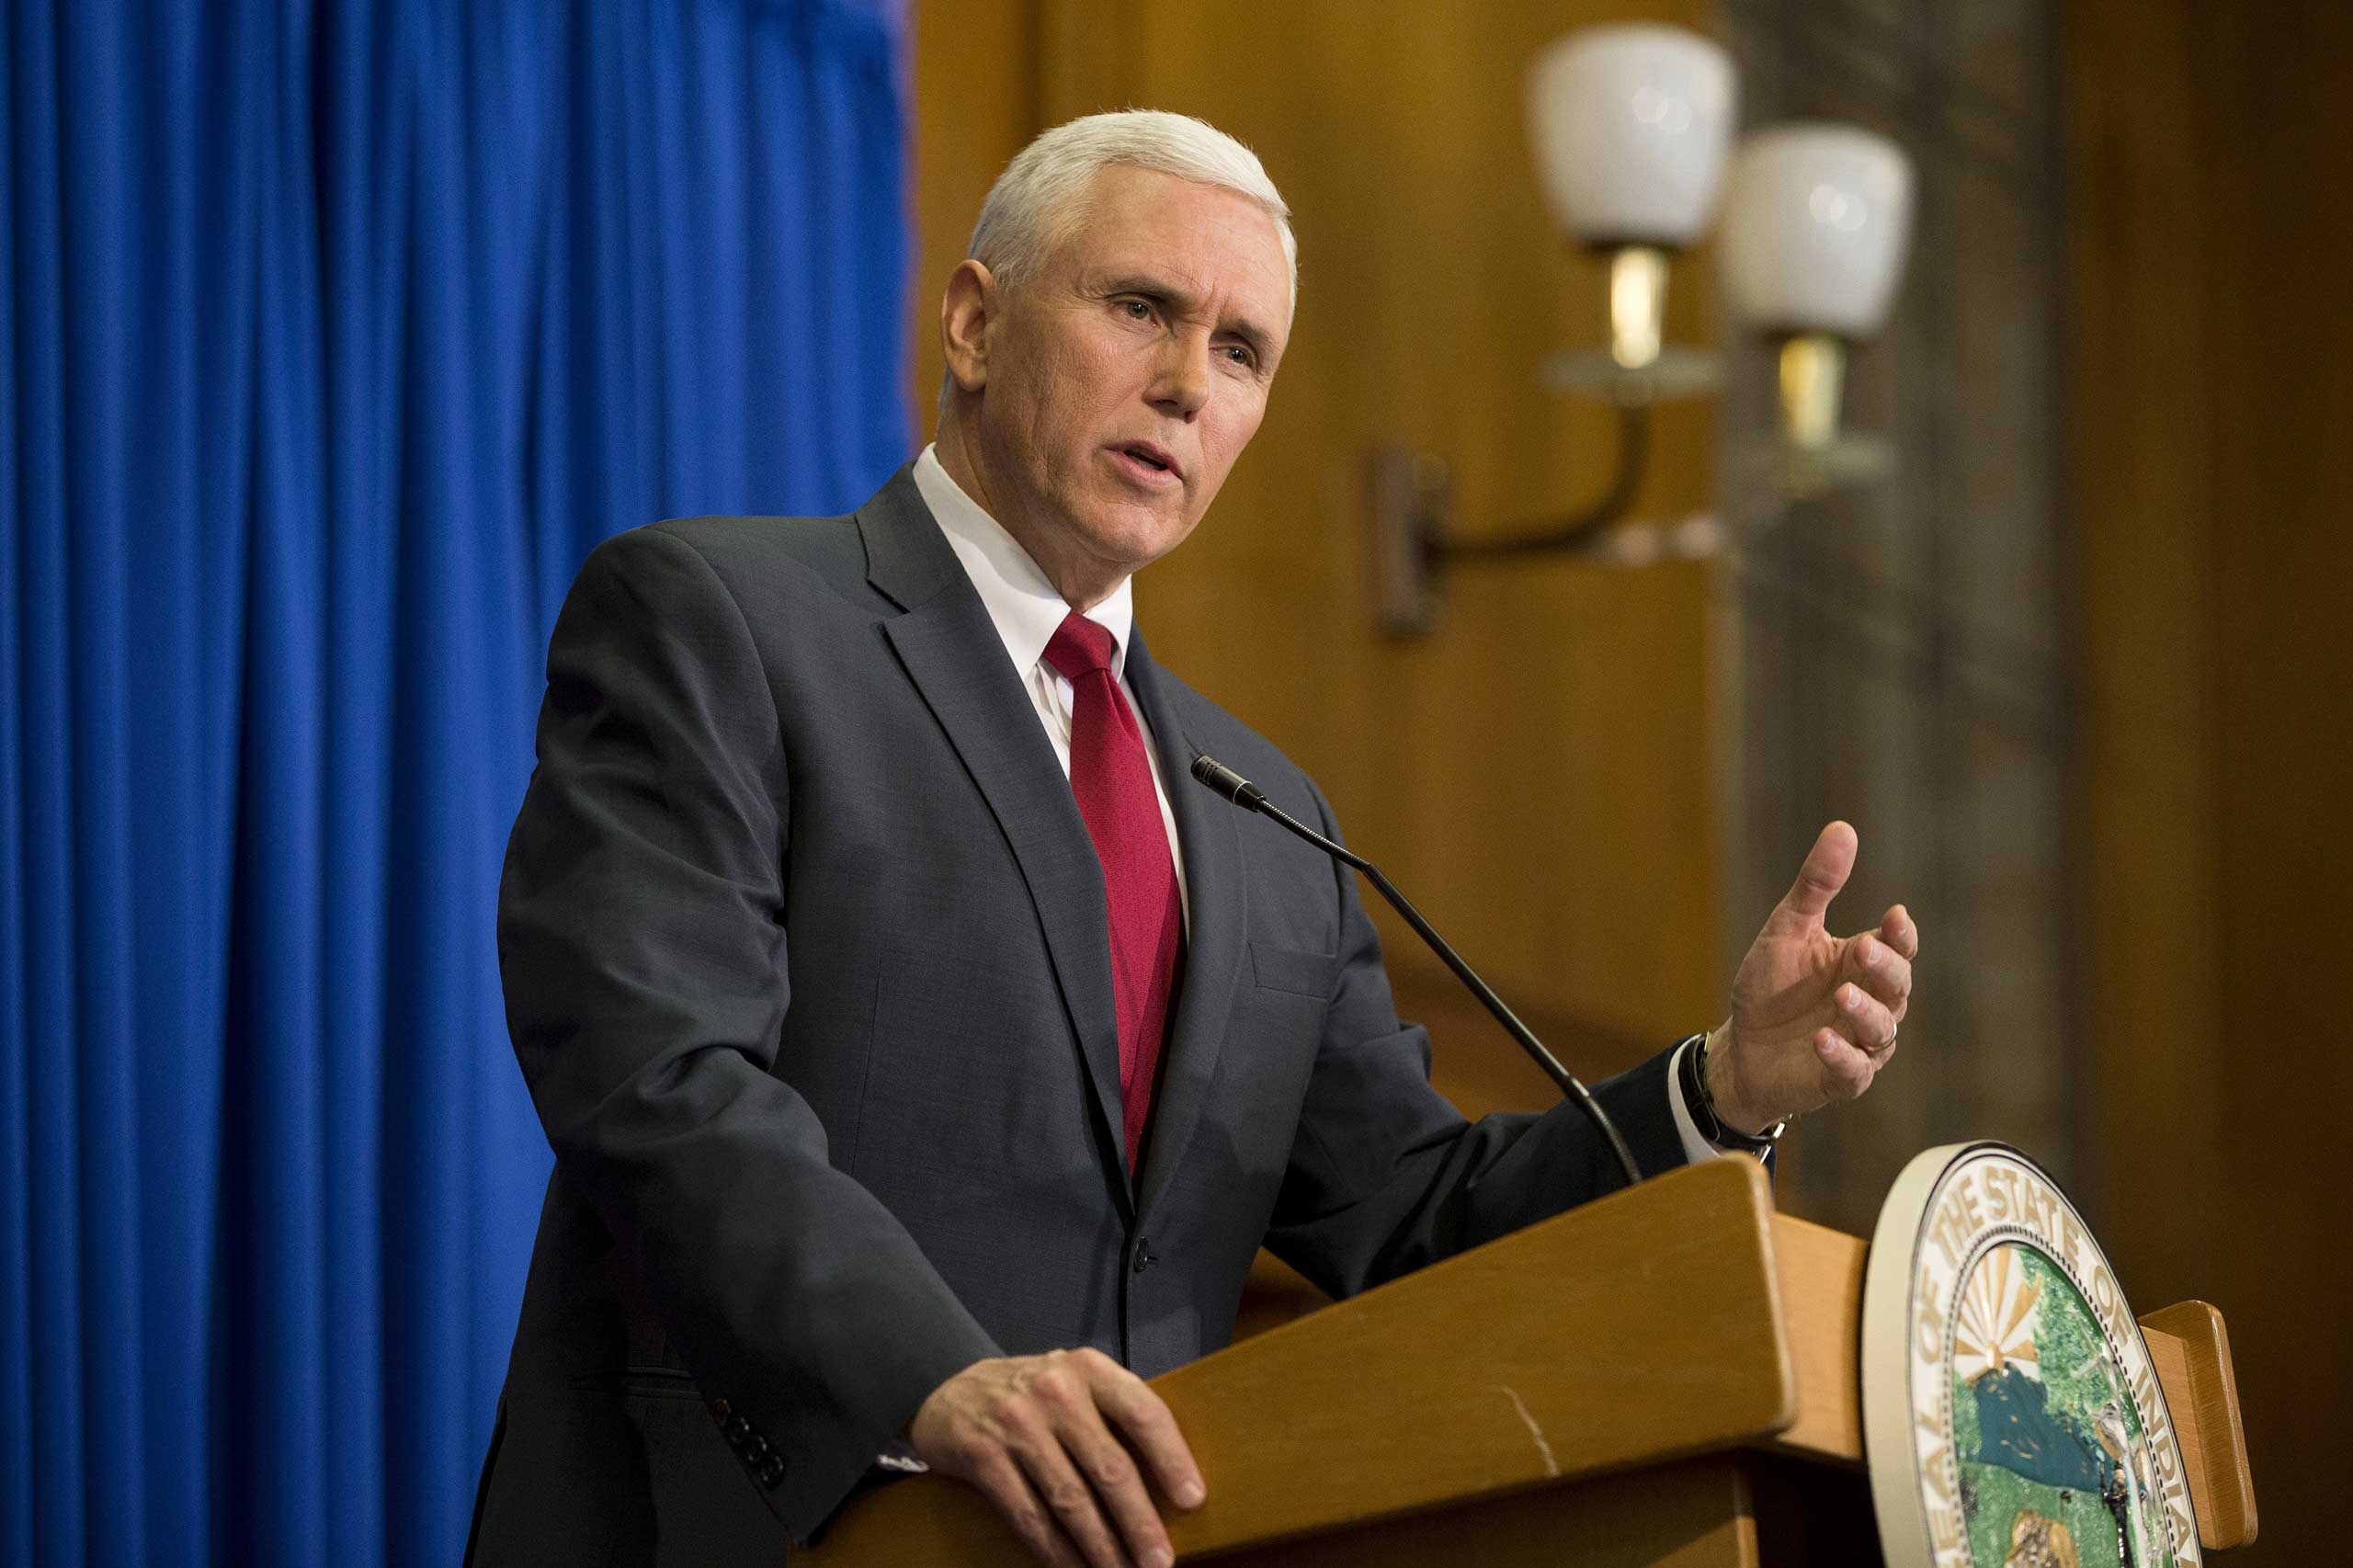 Indiana Gov. Mike Pence speaks during a press conference at the Indiana State Library in Indianapolis on March 31, 2015.